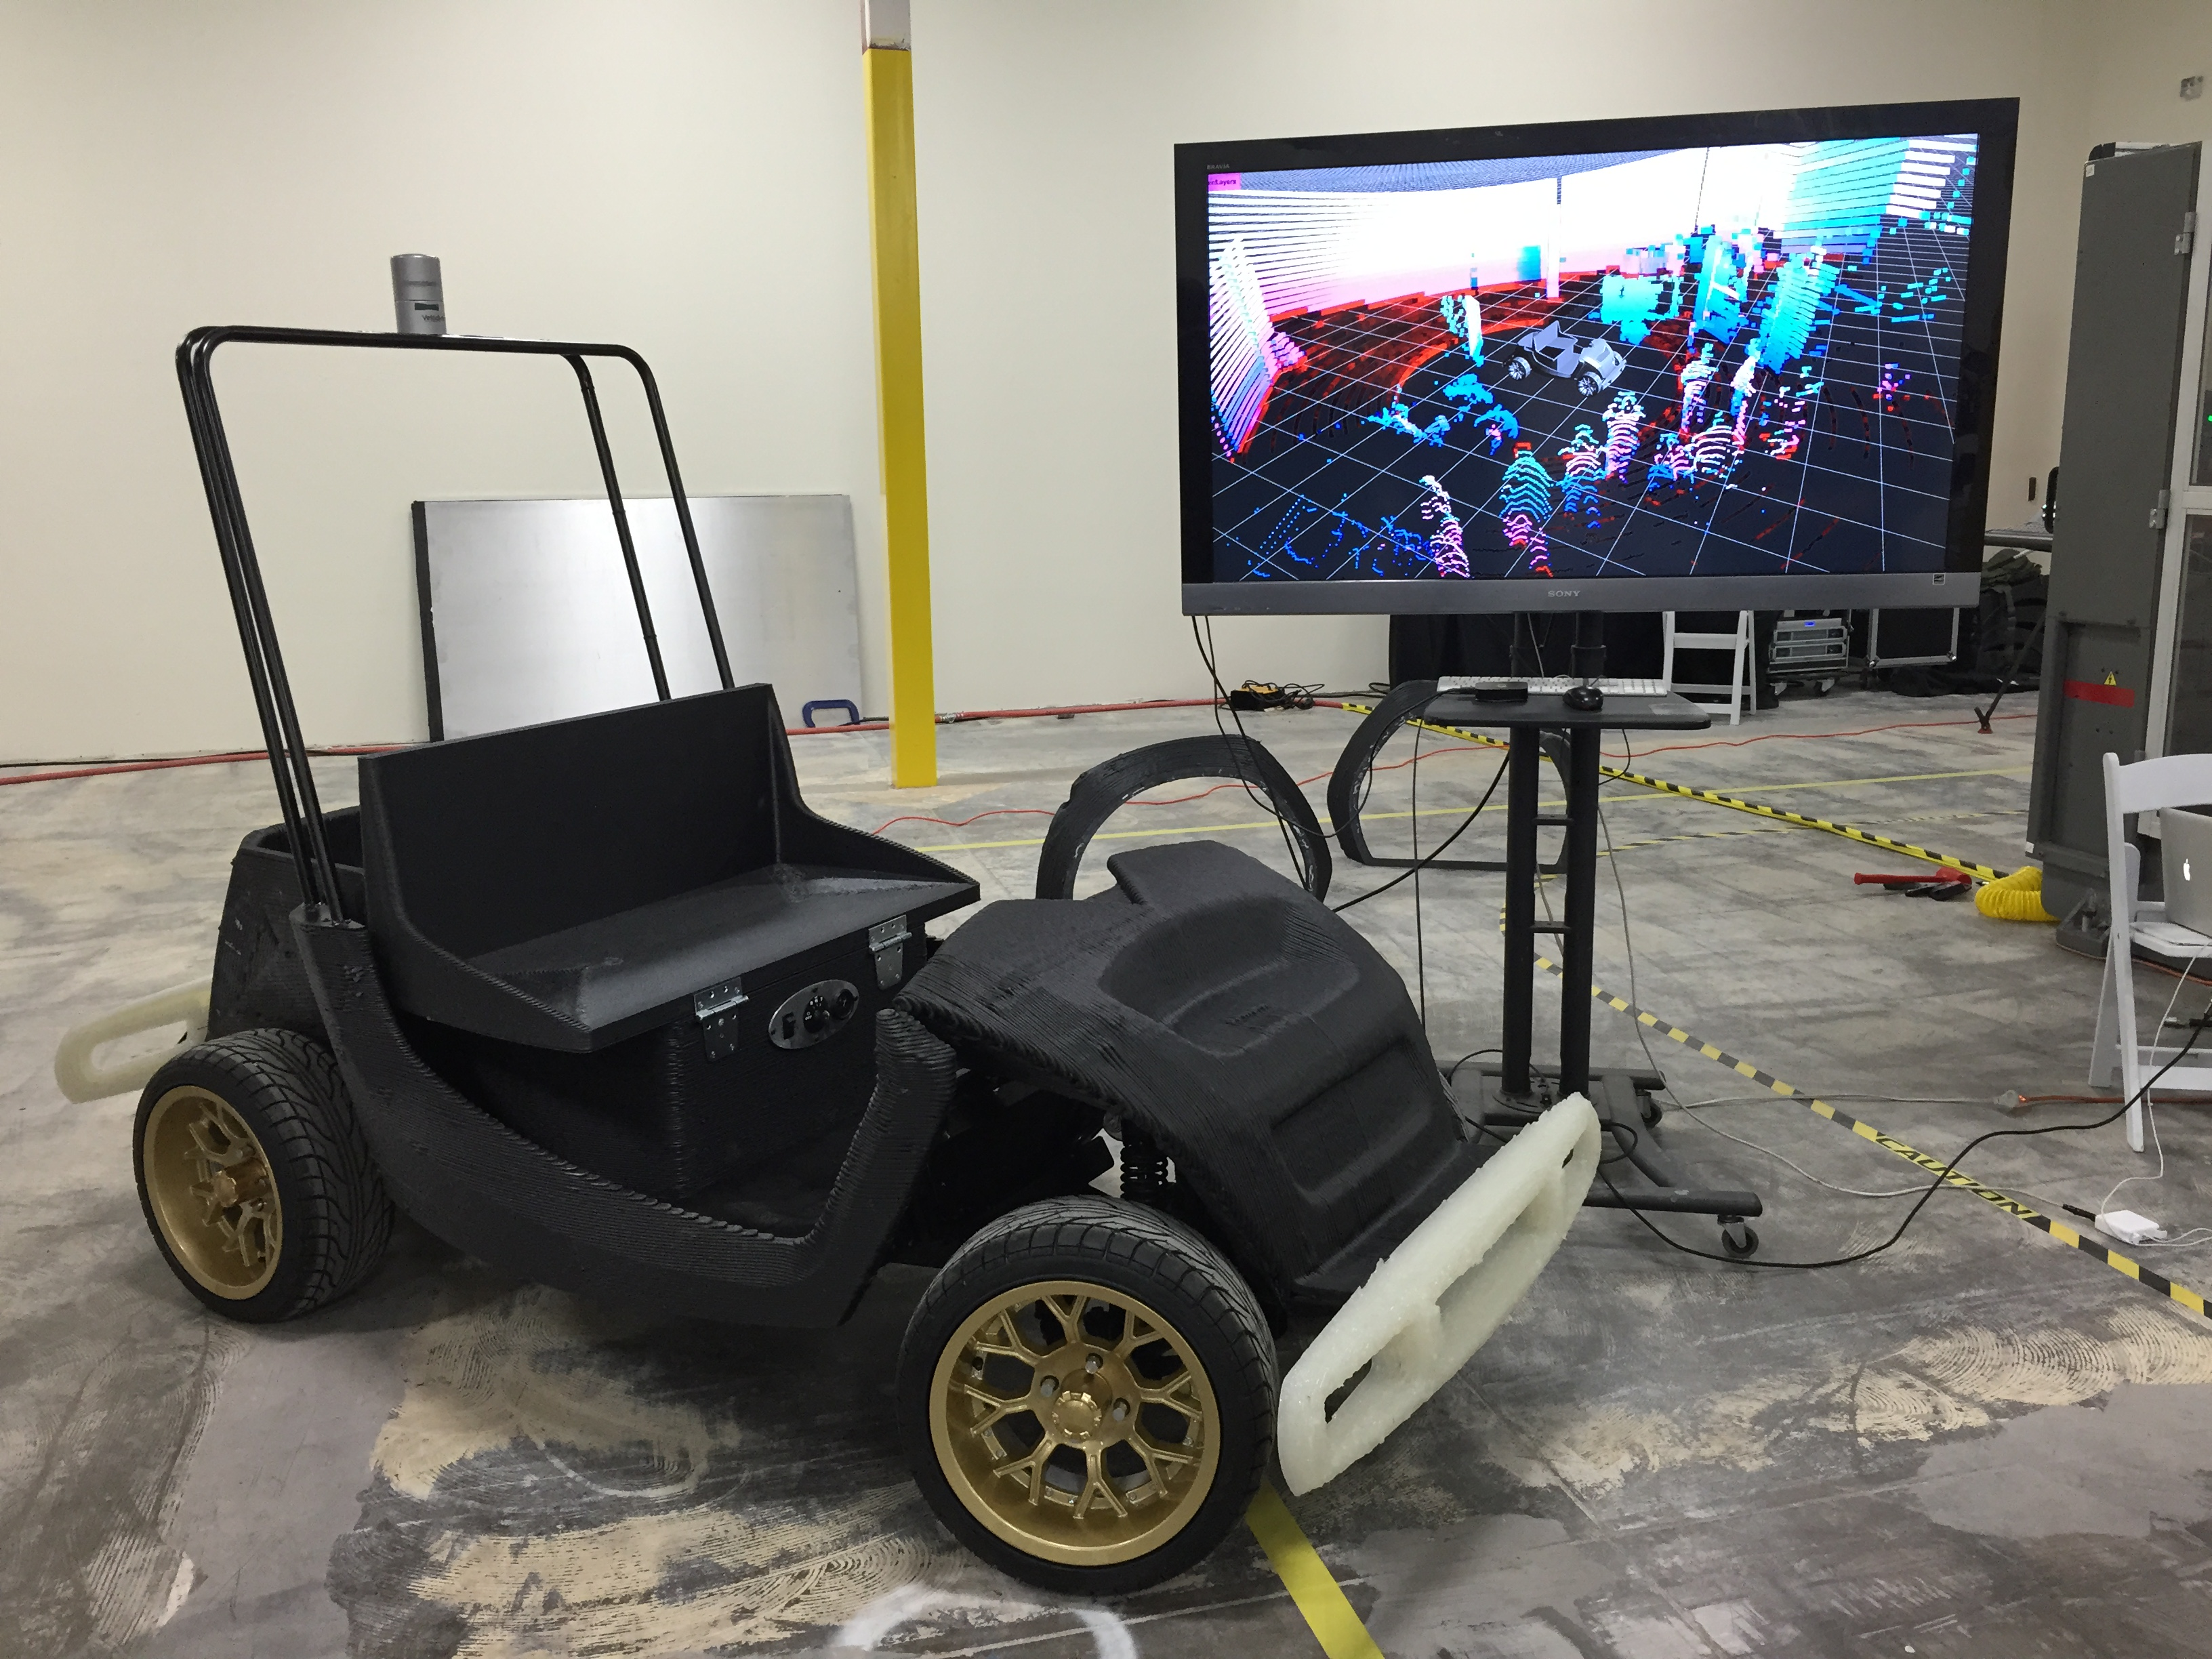 Researchers at the University of Michigan will develop autonomous capabilities for this 3-D printed low-speed electric vehicle that's manufactured by Arizona technology company Local Motors. The screen in the background shows a laser scan of the room. Image credit: Local Motors